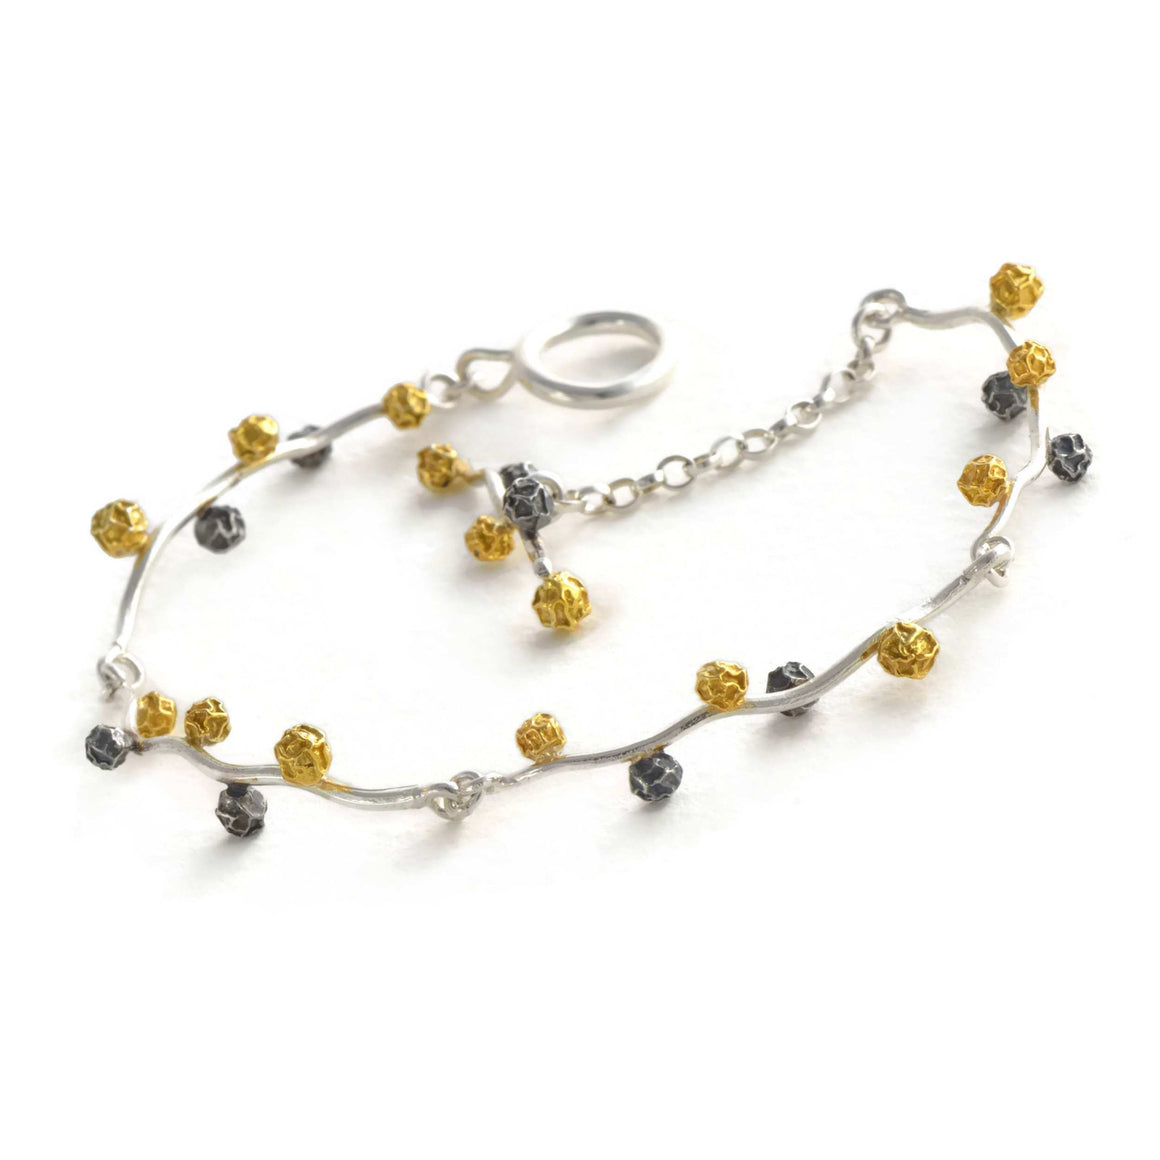 A Floral and fruit bracelet design in sterling silver grains of peppercorn with three colours